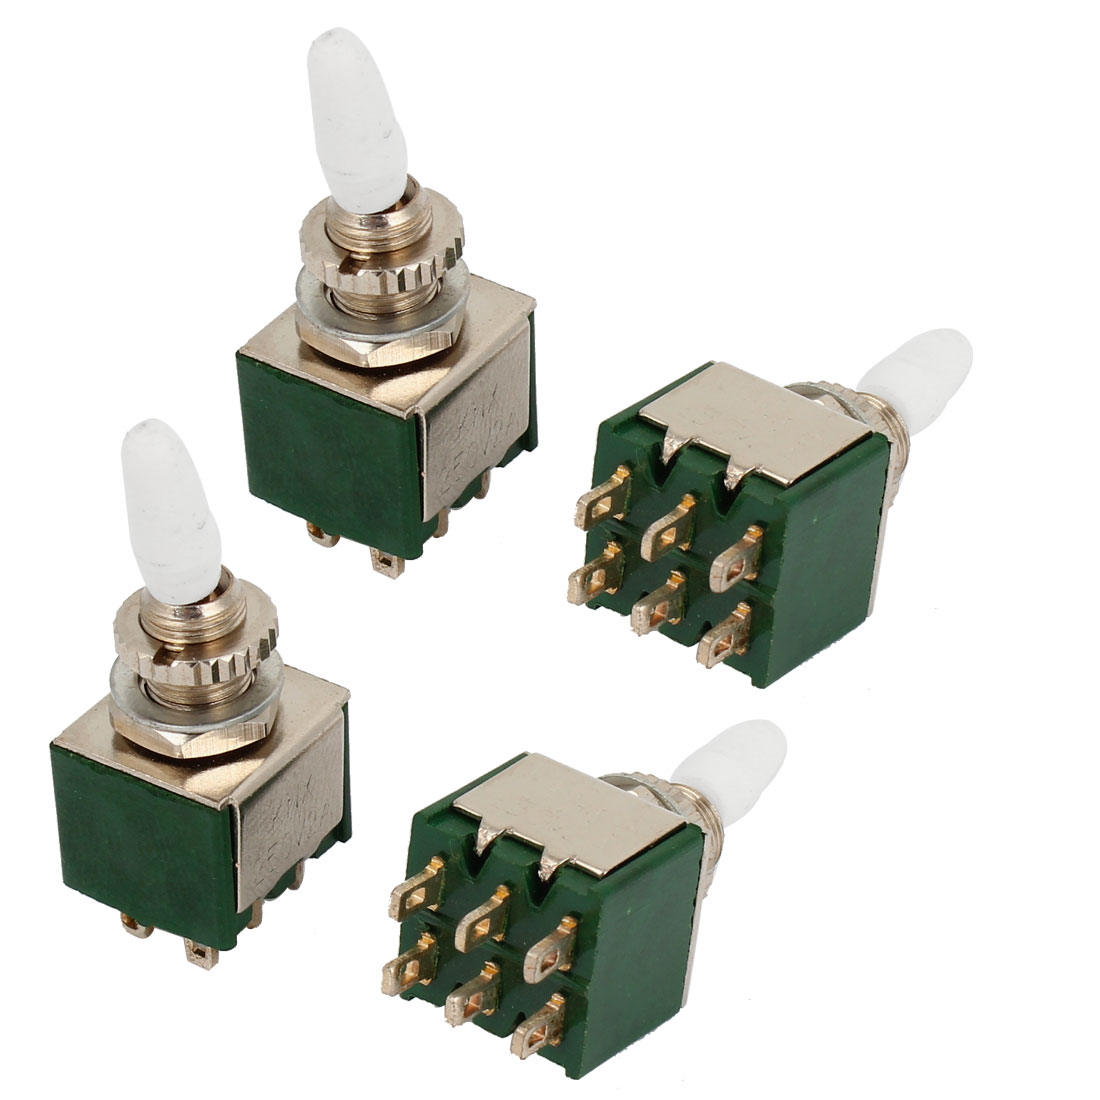 4pcs DPDT On/ON Dual Positions 6 Pin Latching Toggle Switch AC 250V 2A